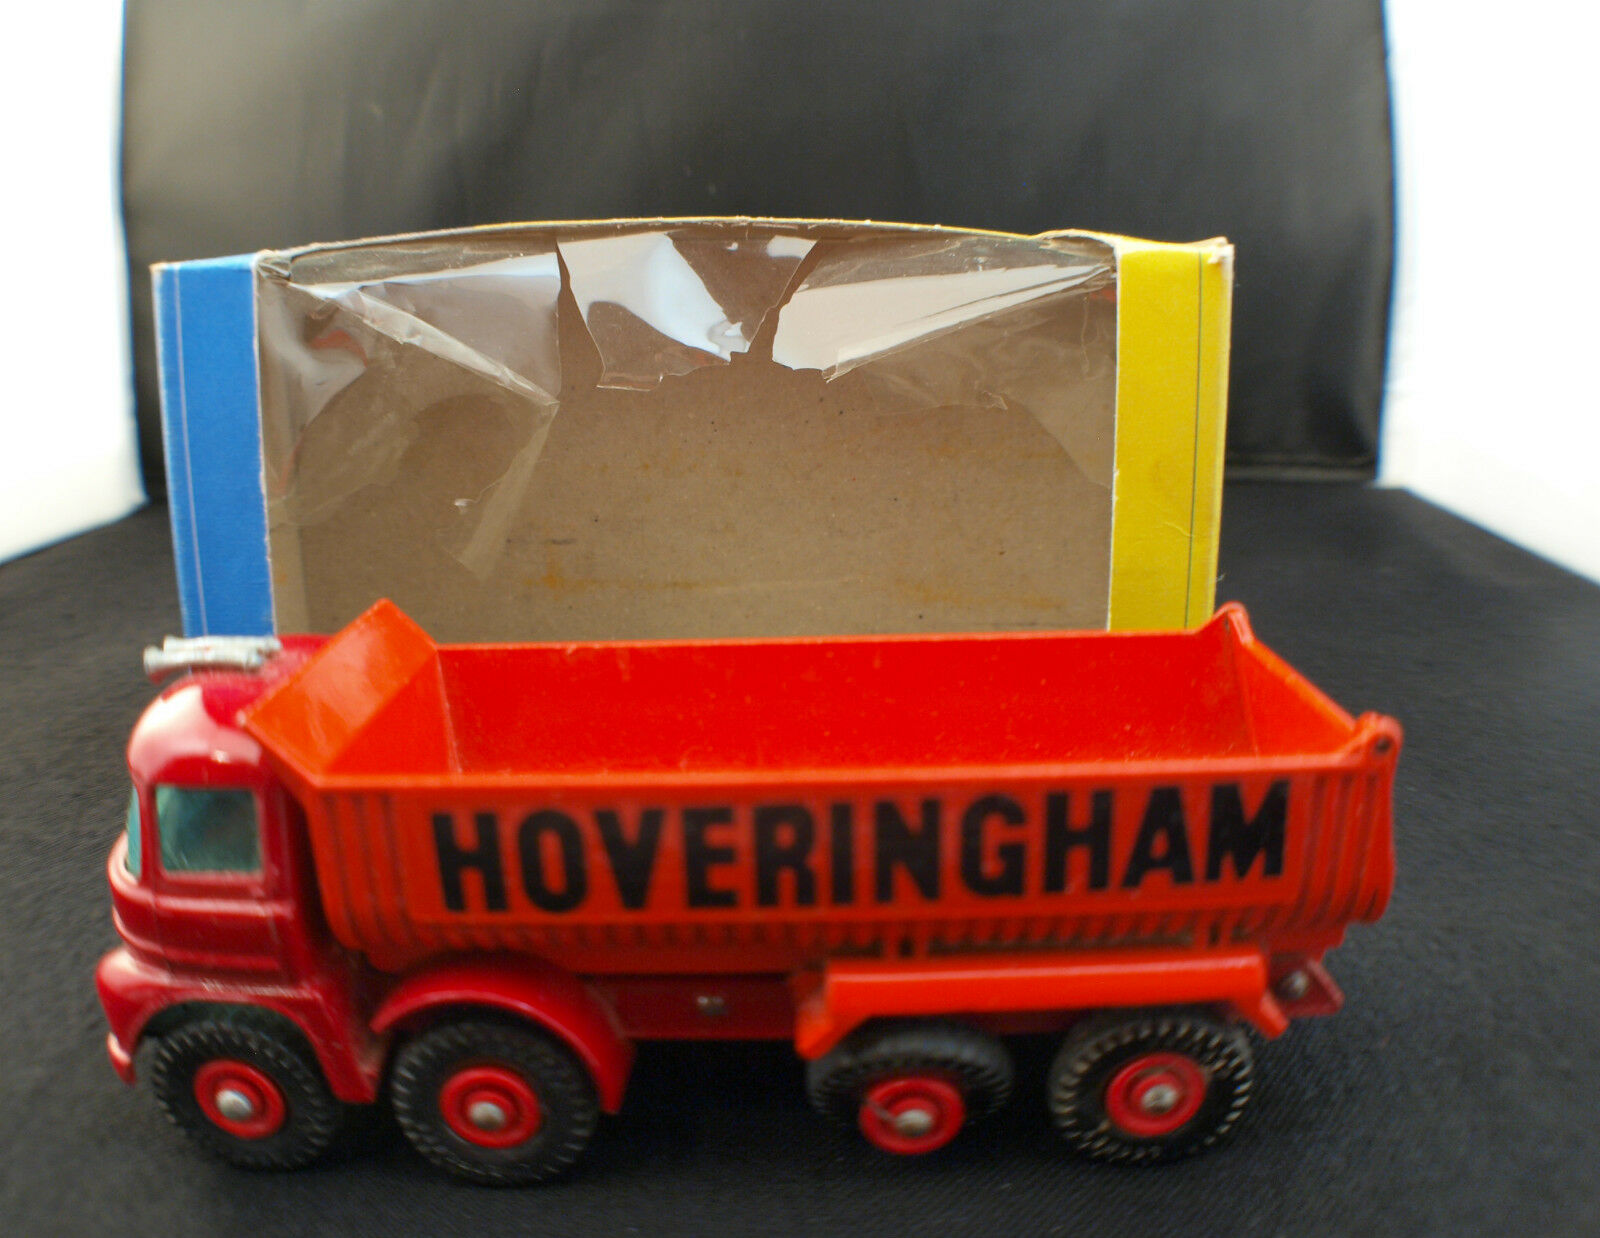 Matchbox K1 FODEN TIPPER truckhoveringham LORRY CONTAINER NEW IN